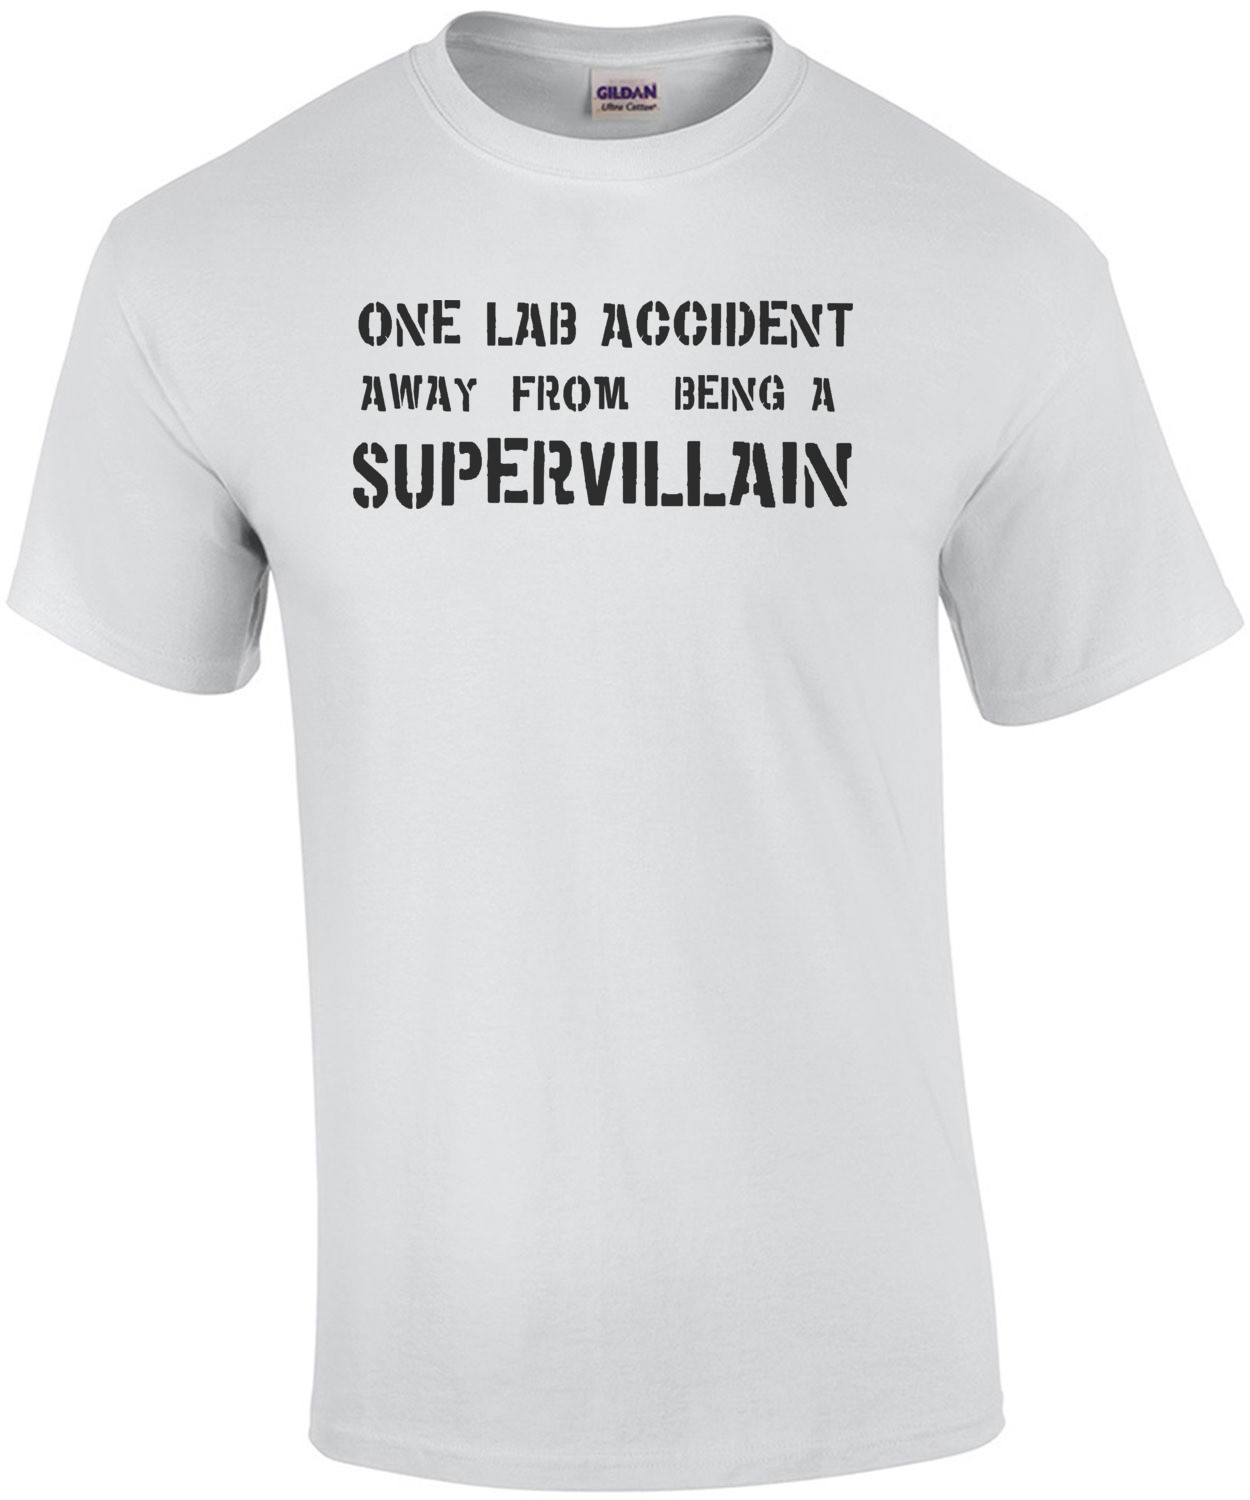 One lab accident away from being a supervillian t-shirt